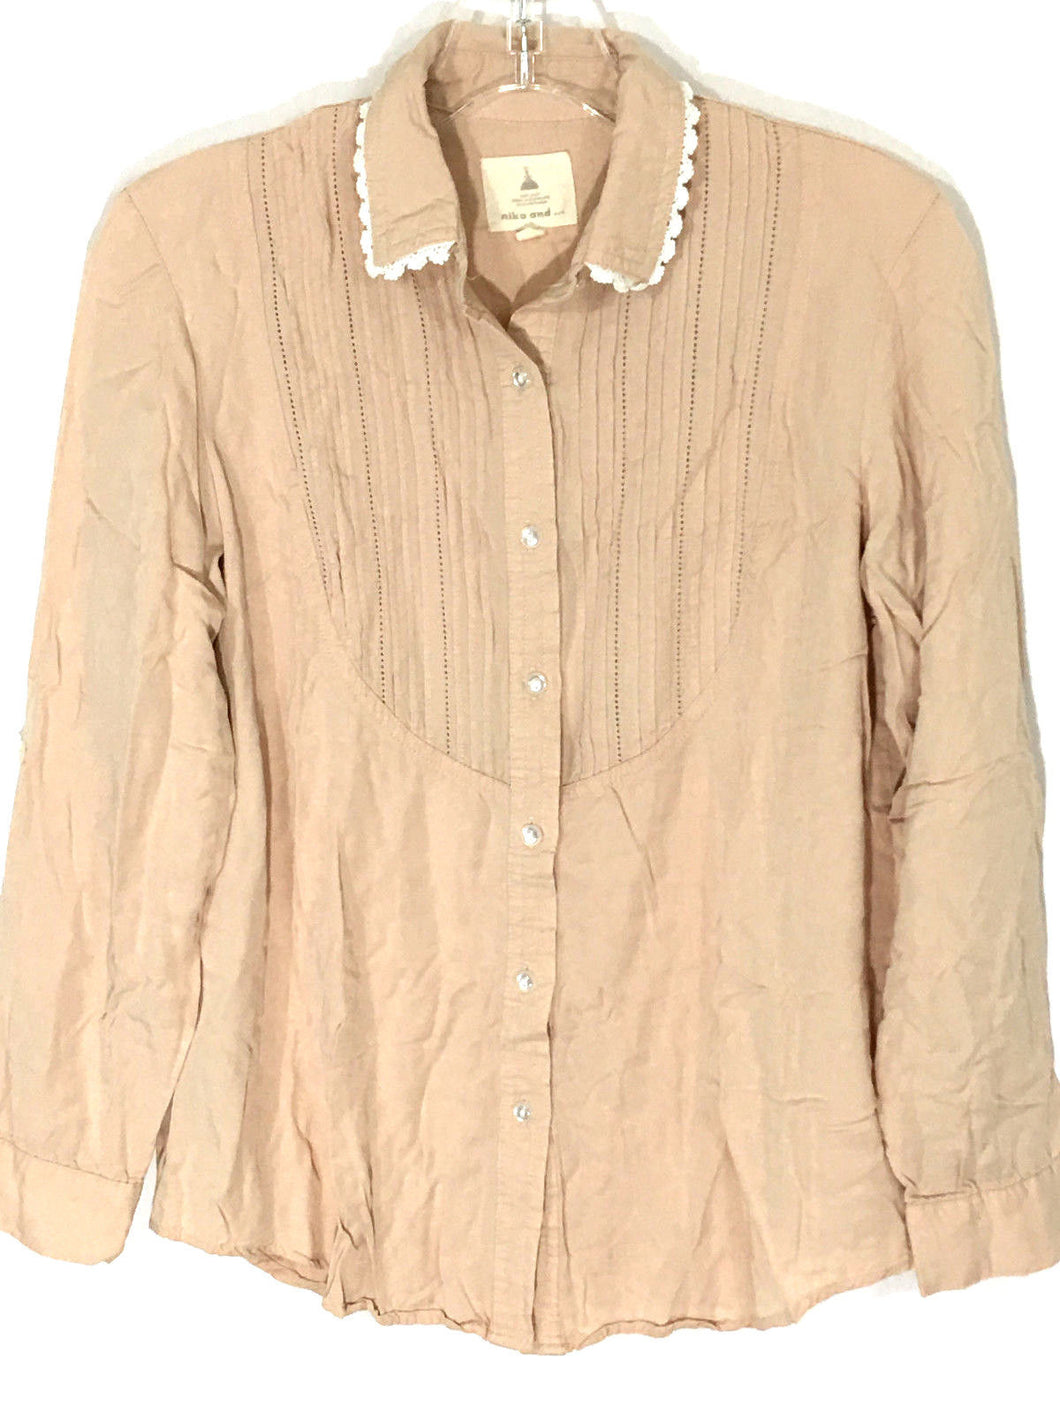 Niko And... Blouse Bib Ruffle Button Down Peach Shirt Lace Trim Womens Medium - Preowned - FunkyCrap Boutique